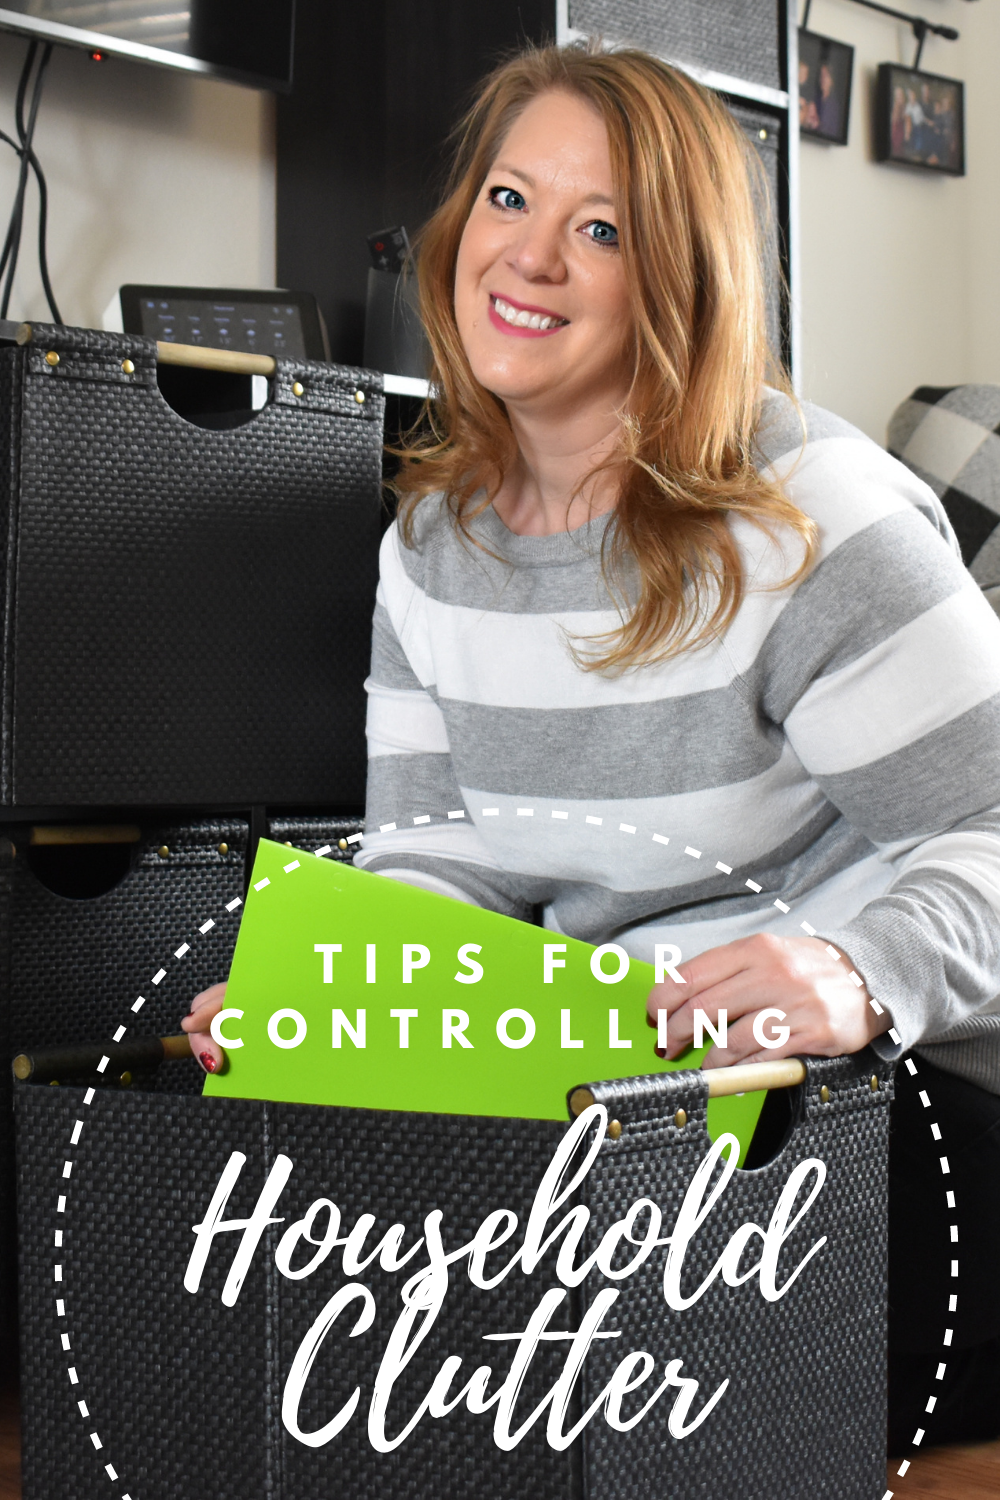 Tips for Controlling Household Clutter. How to deal with clutter. Home organizing. Tips for controlling clutter. controlling clutter. decluttering tips. How to declutter.